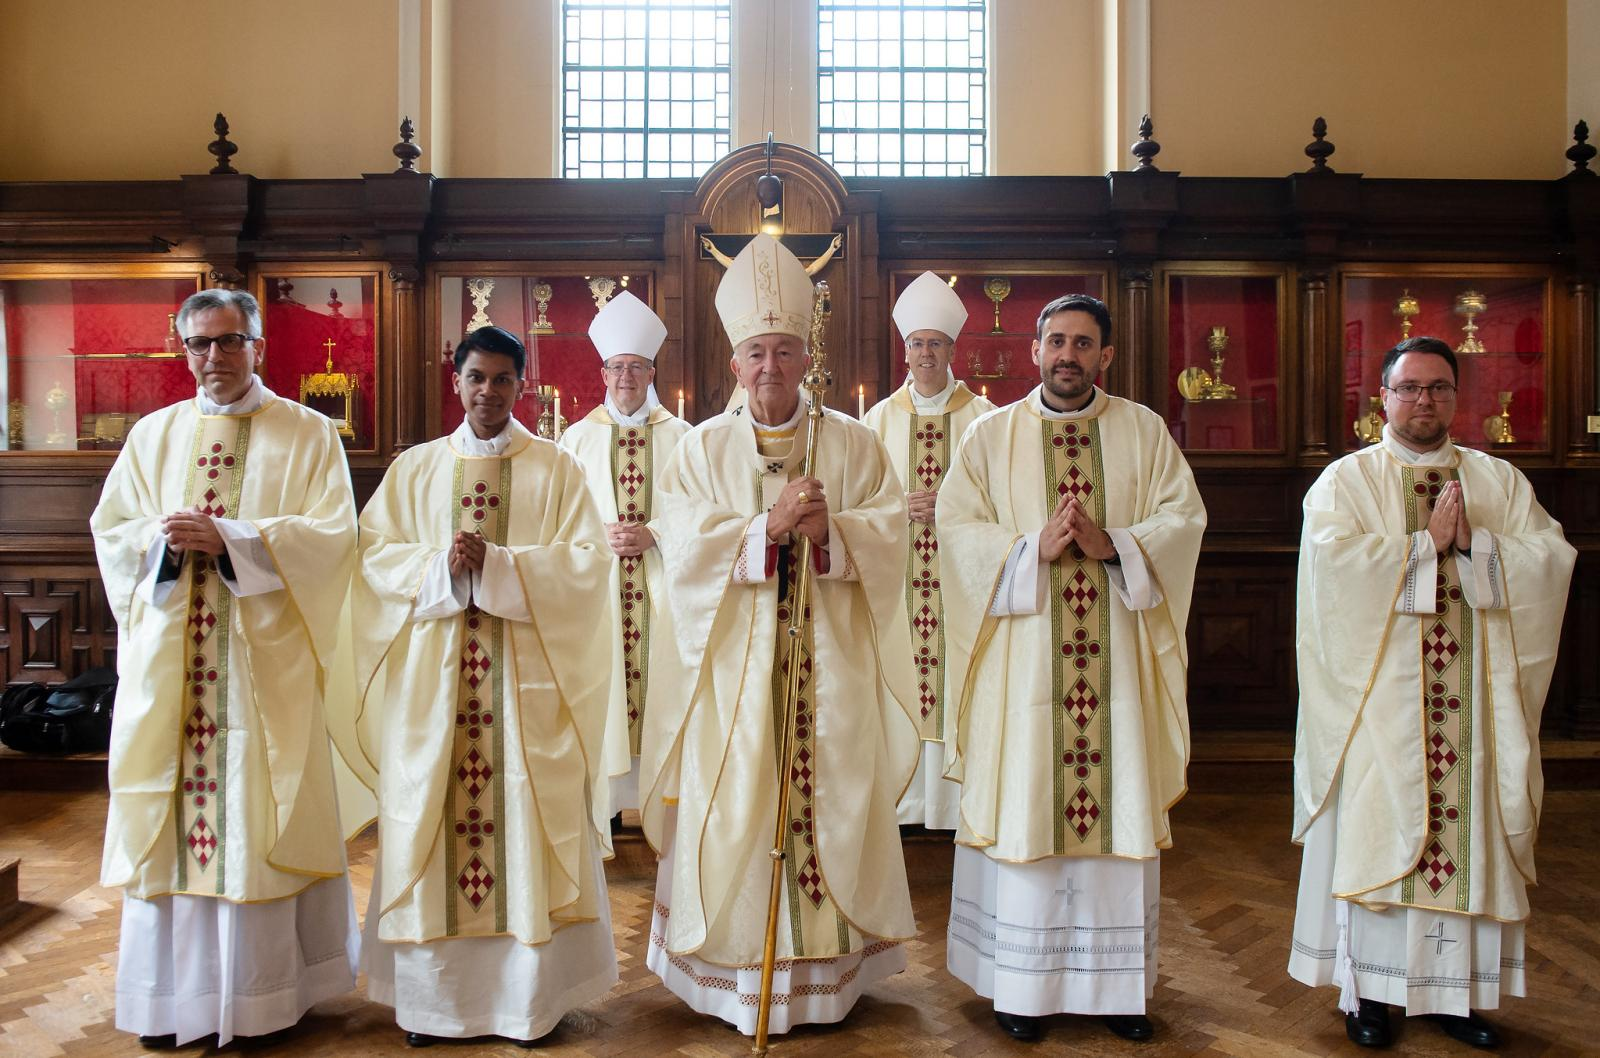 Cardinal celebrates ordination Mass of four new priests - Diocese of Westminster